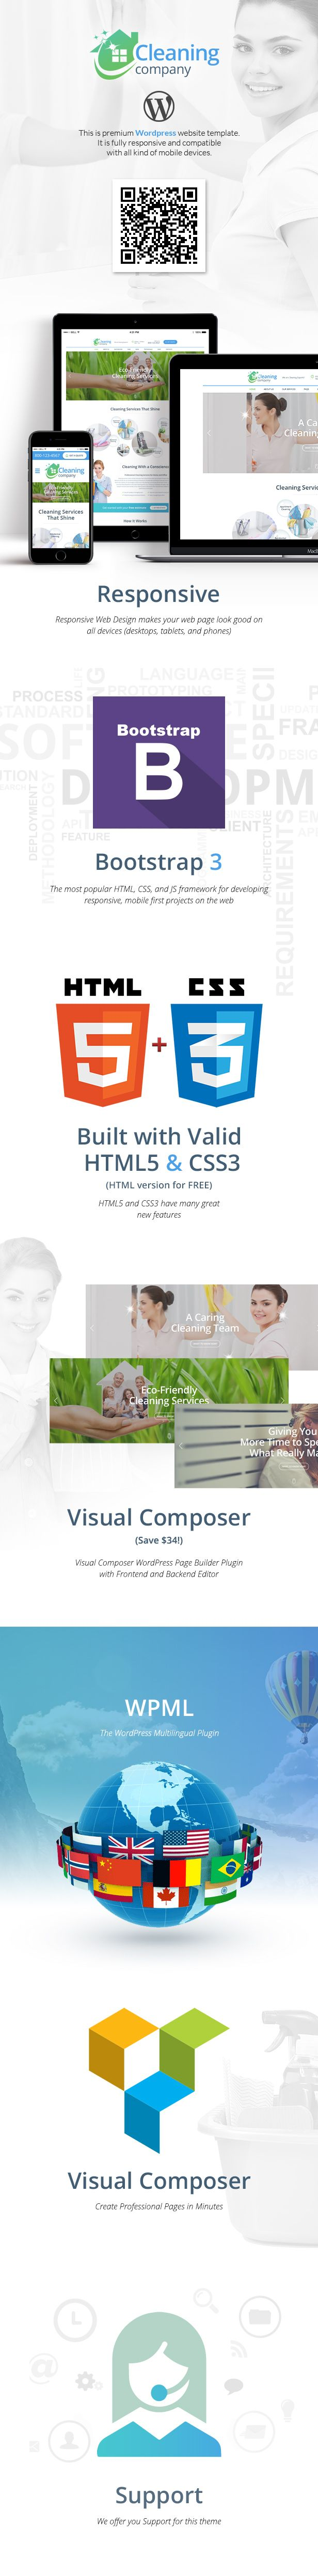 Cleaning Services – House Cleaning Services theme is a modern, clean and professional WordPress theme which is specially created to spread and represent your cleaning services business to your pote...